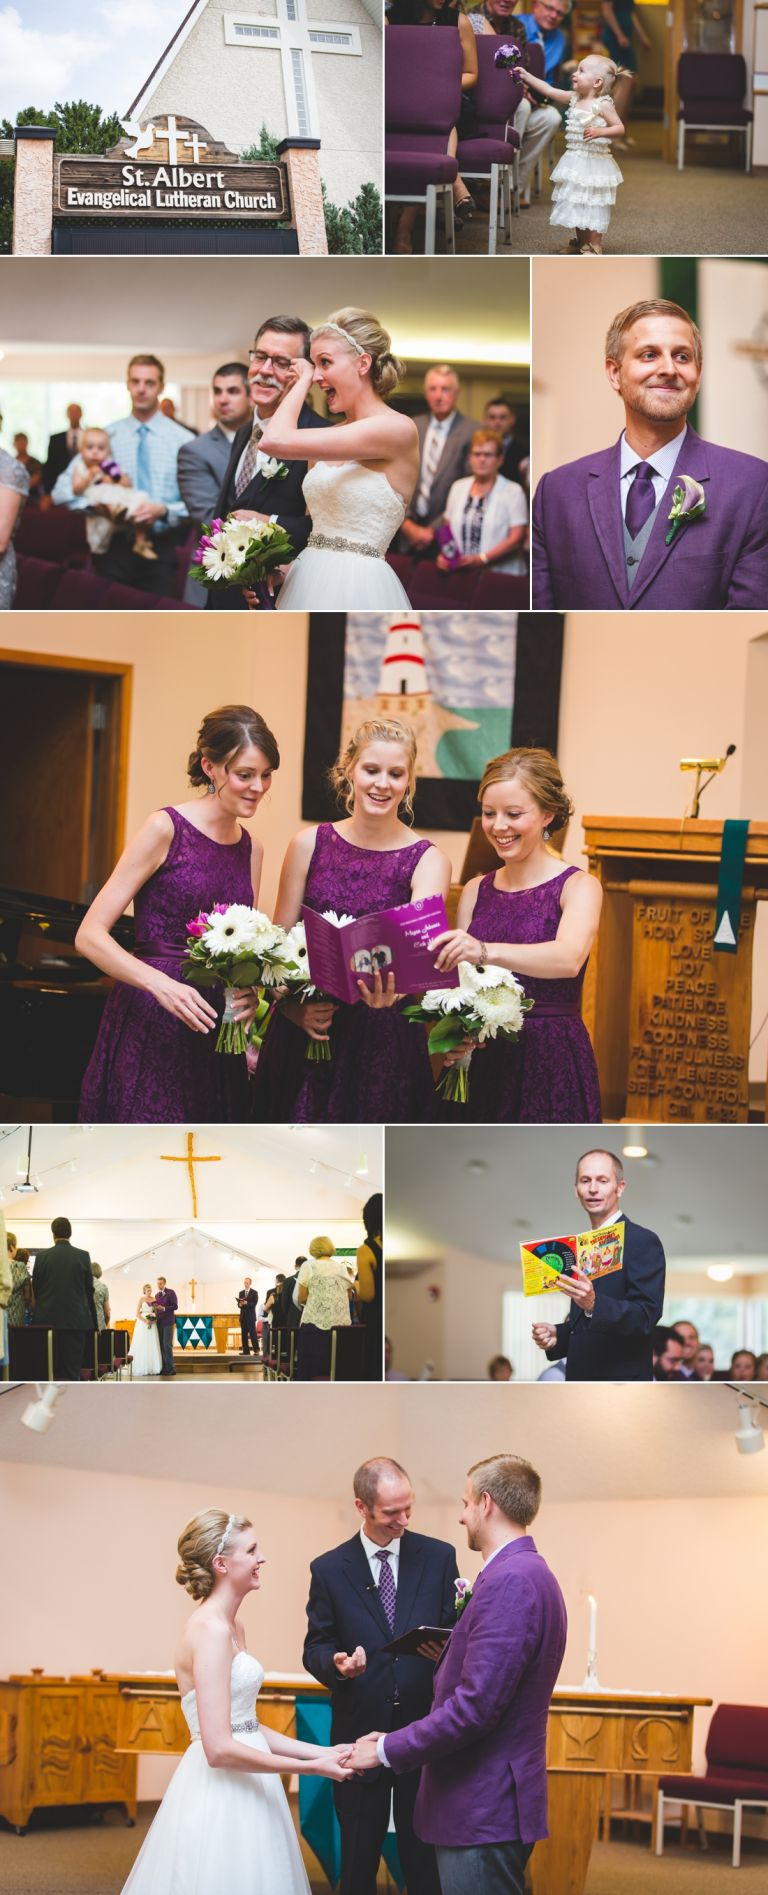 Wedding-st-albert-evangelical-lutheran-church